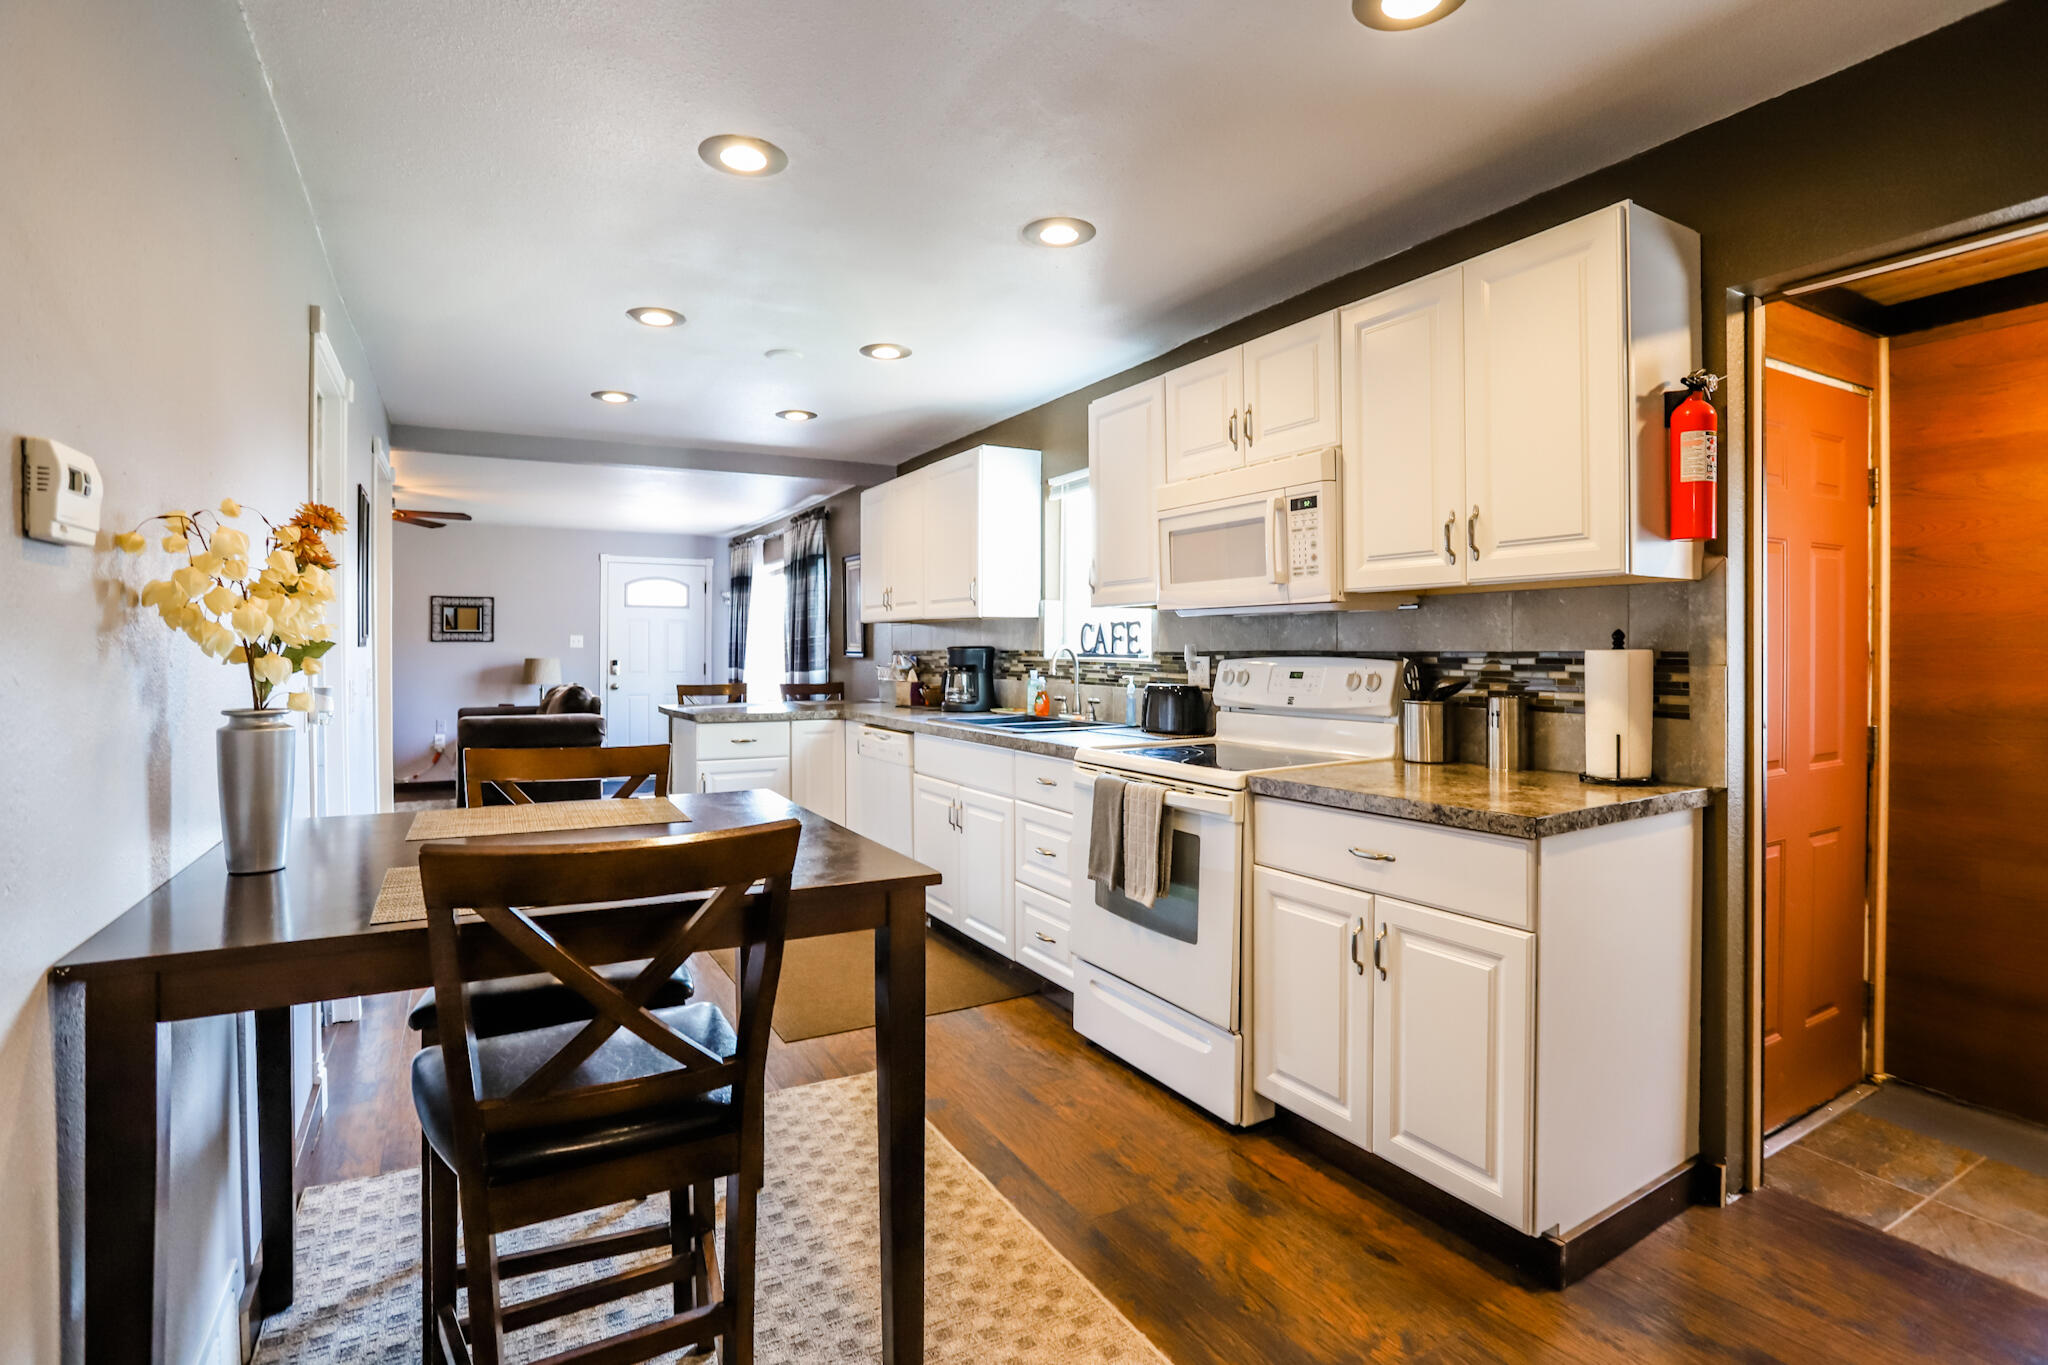 This beautifully renovated, open concept, two bedroom house is full of potential.  Last year it served as a short term rental from July 2020 to July 2021 and grossed $18,000.  Whether you are in search of a home in need of little to no renovating, or you are interested in a turn key rental property, this house provides just that.  With a large yard, patio area, spacious kitchen and nicely updated bathrooms this home has a lot to offer.